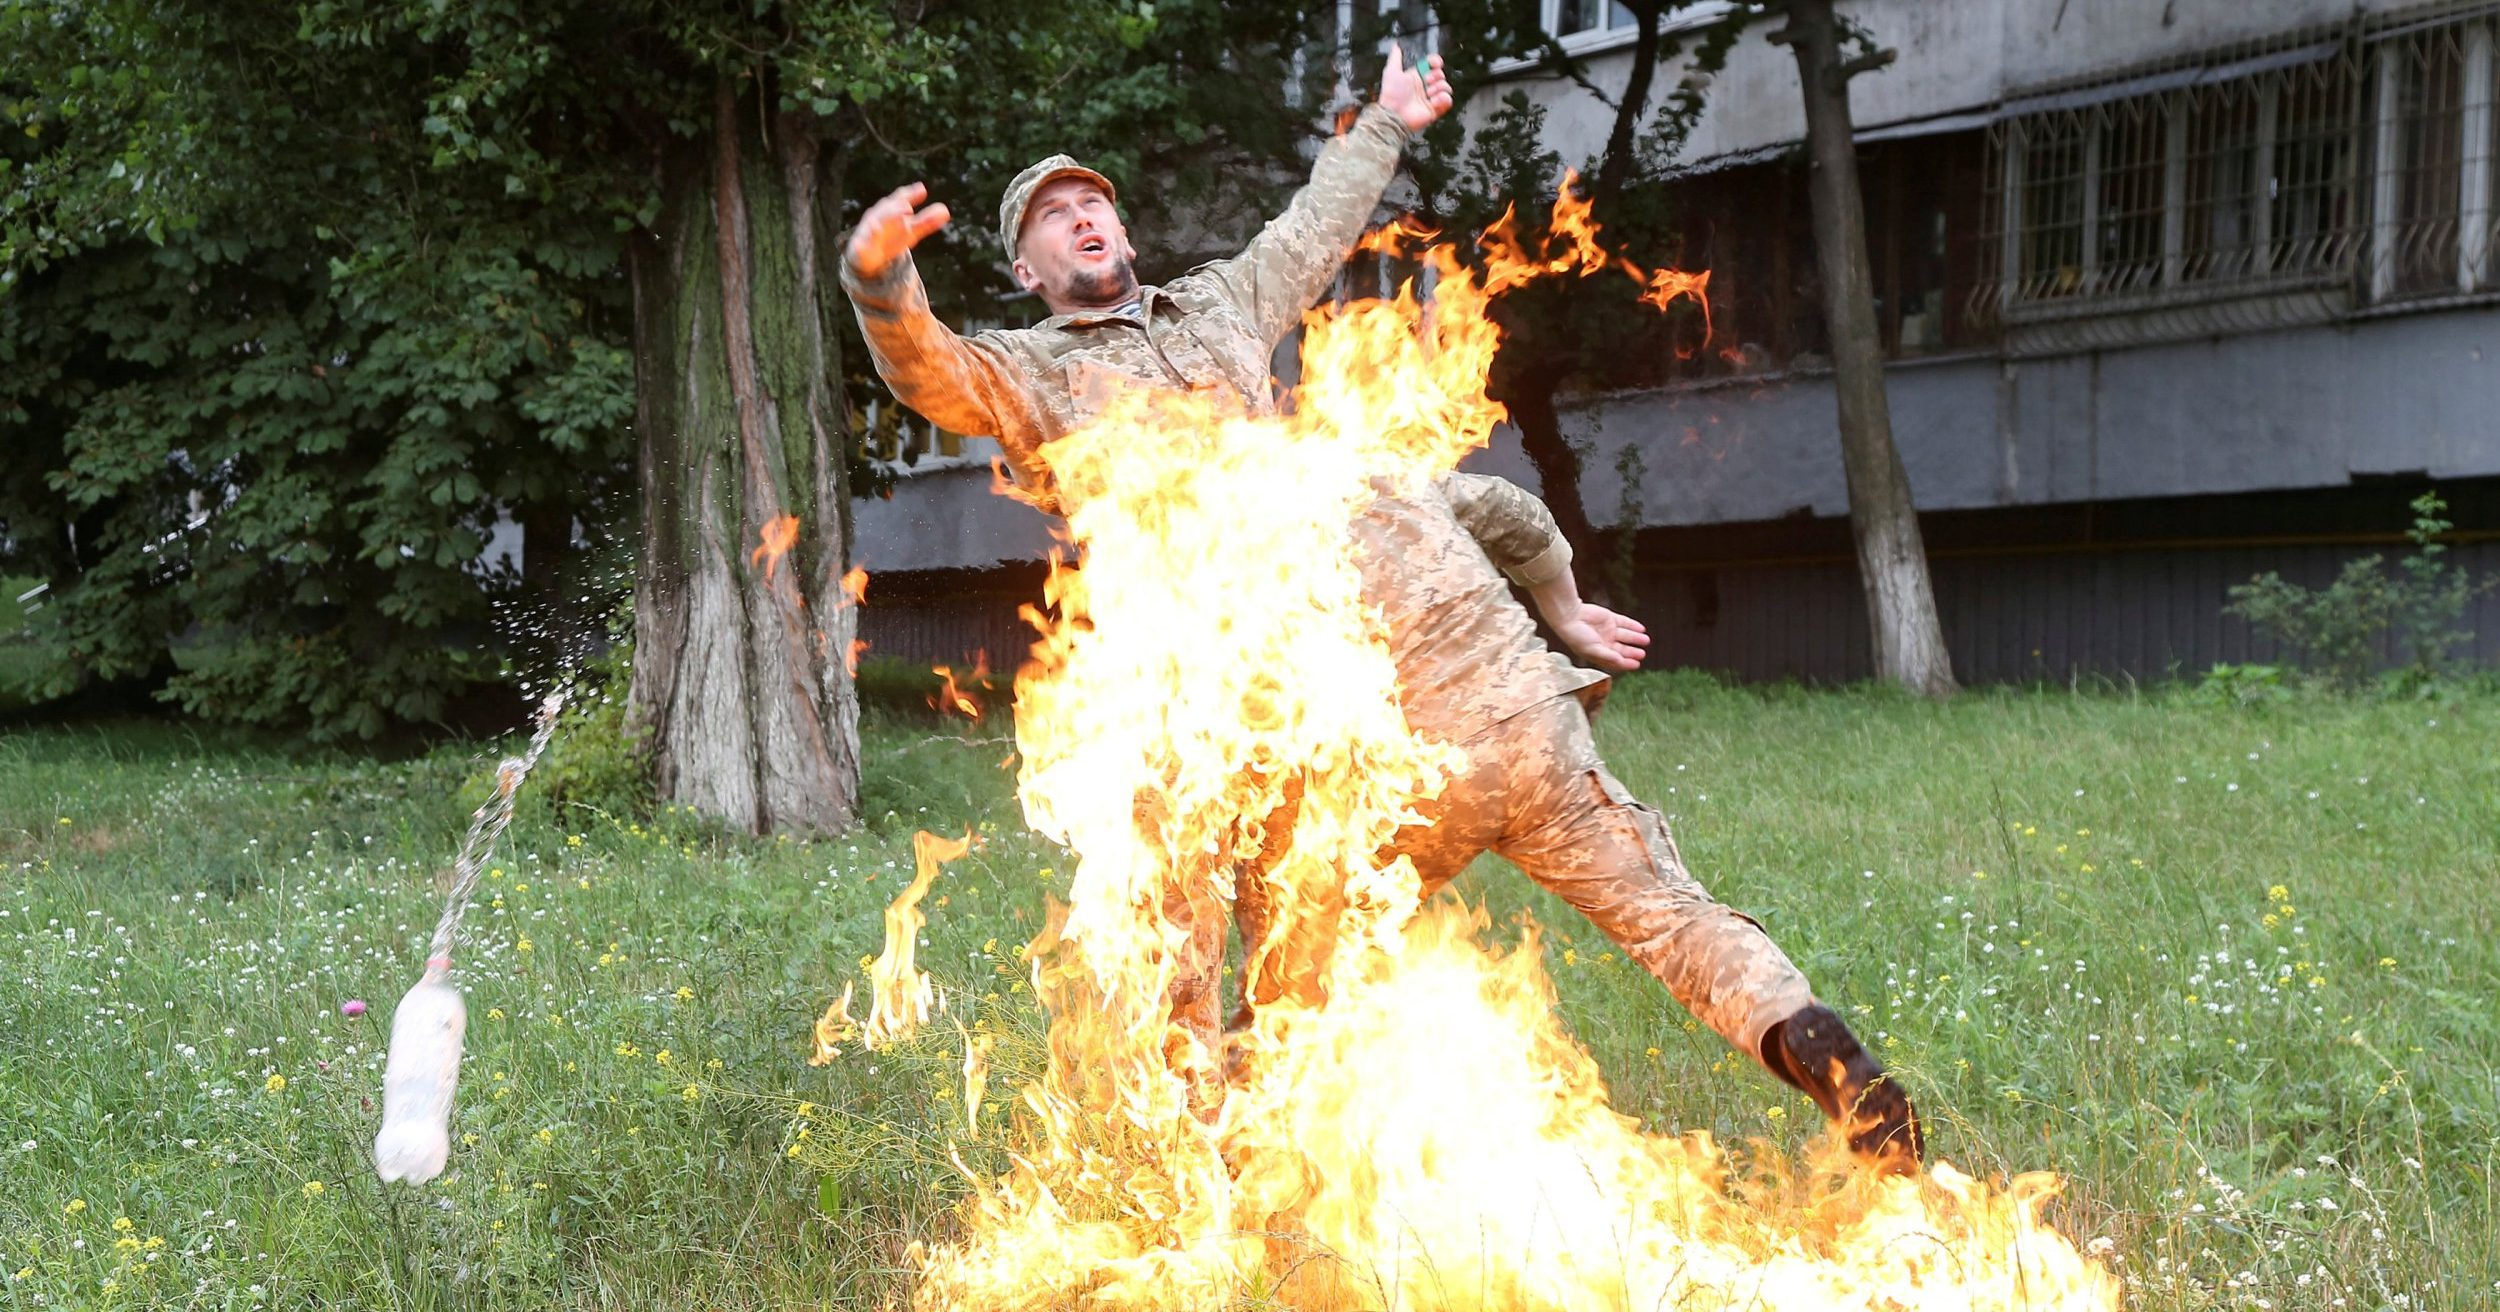 Soldier set himself on fire after being sacked from army